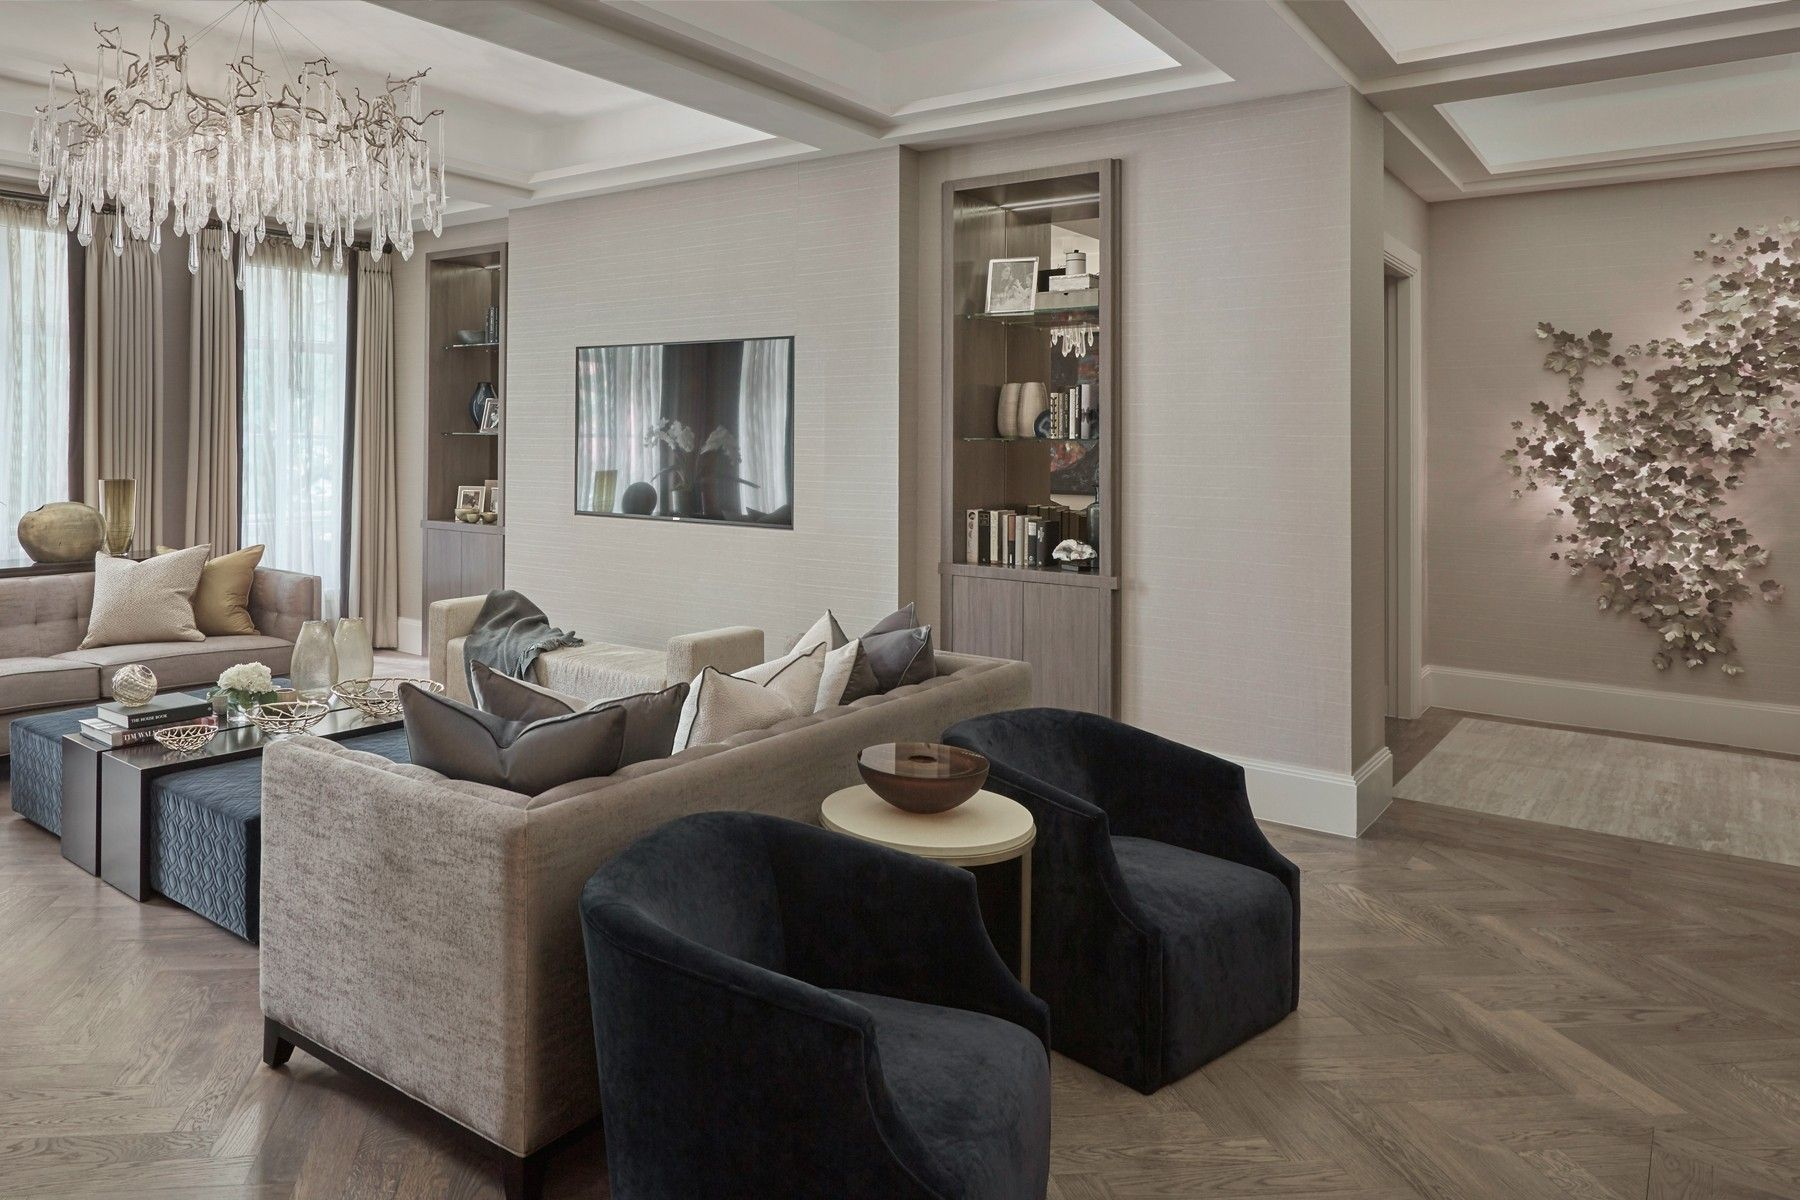 Znalezione Obrazy Dla Zapytania Laura Hammett  Interiors  Living Captivating Interior Design Modern Living Room Design Ideas